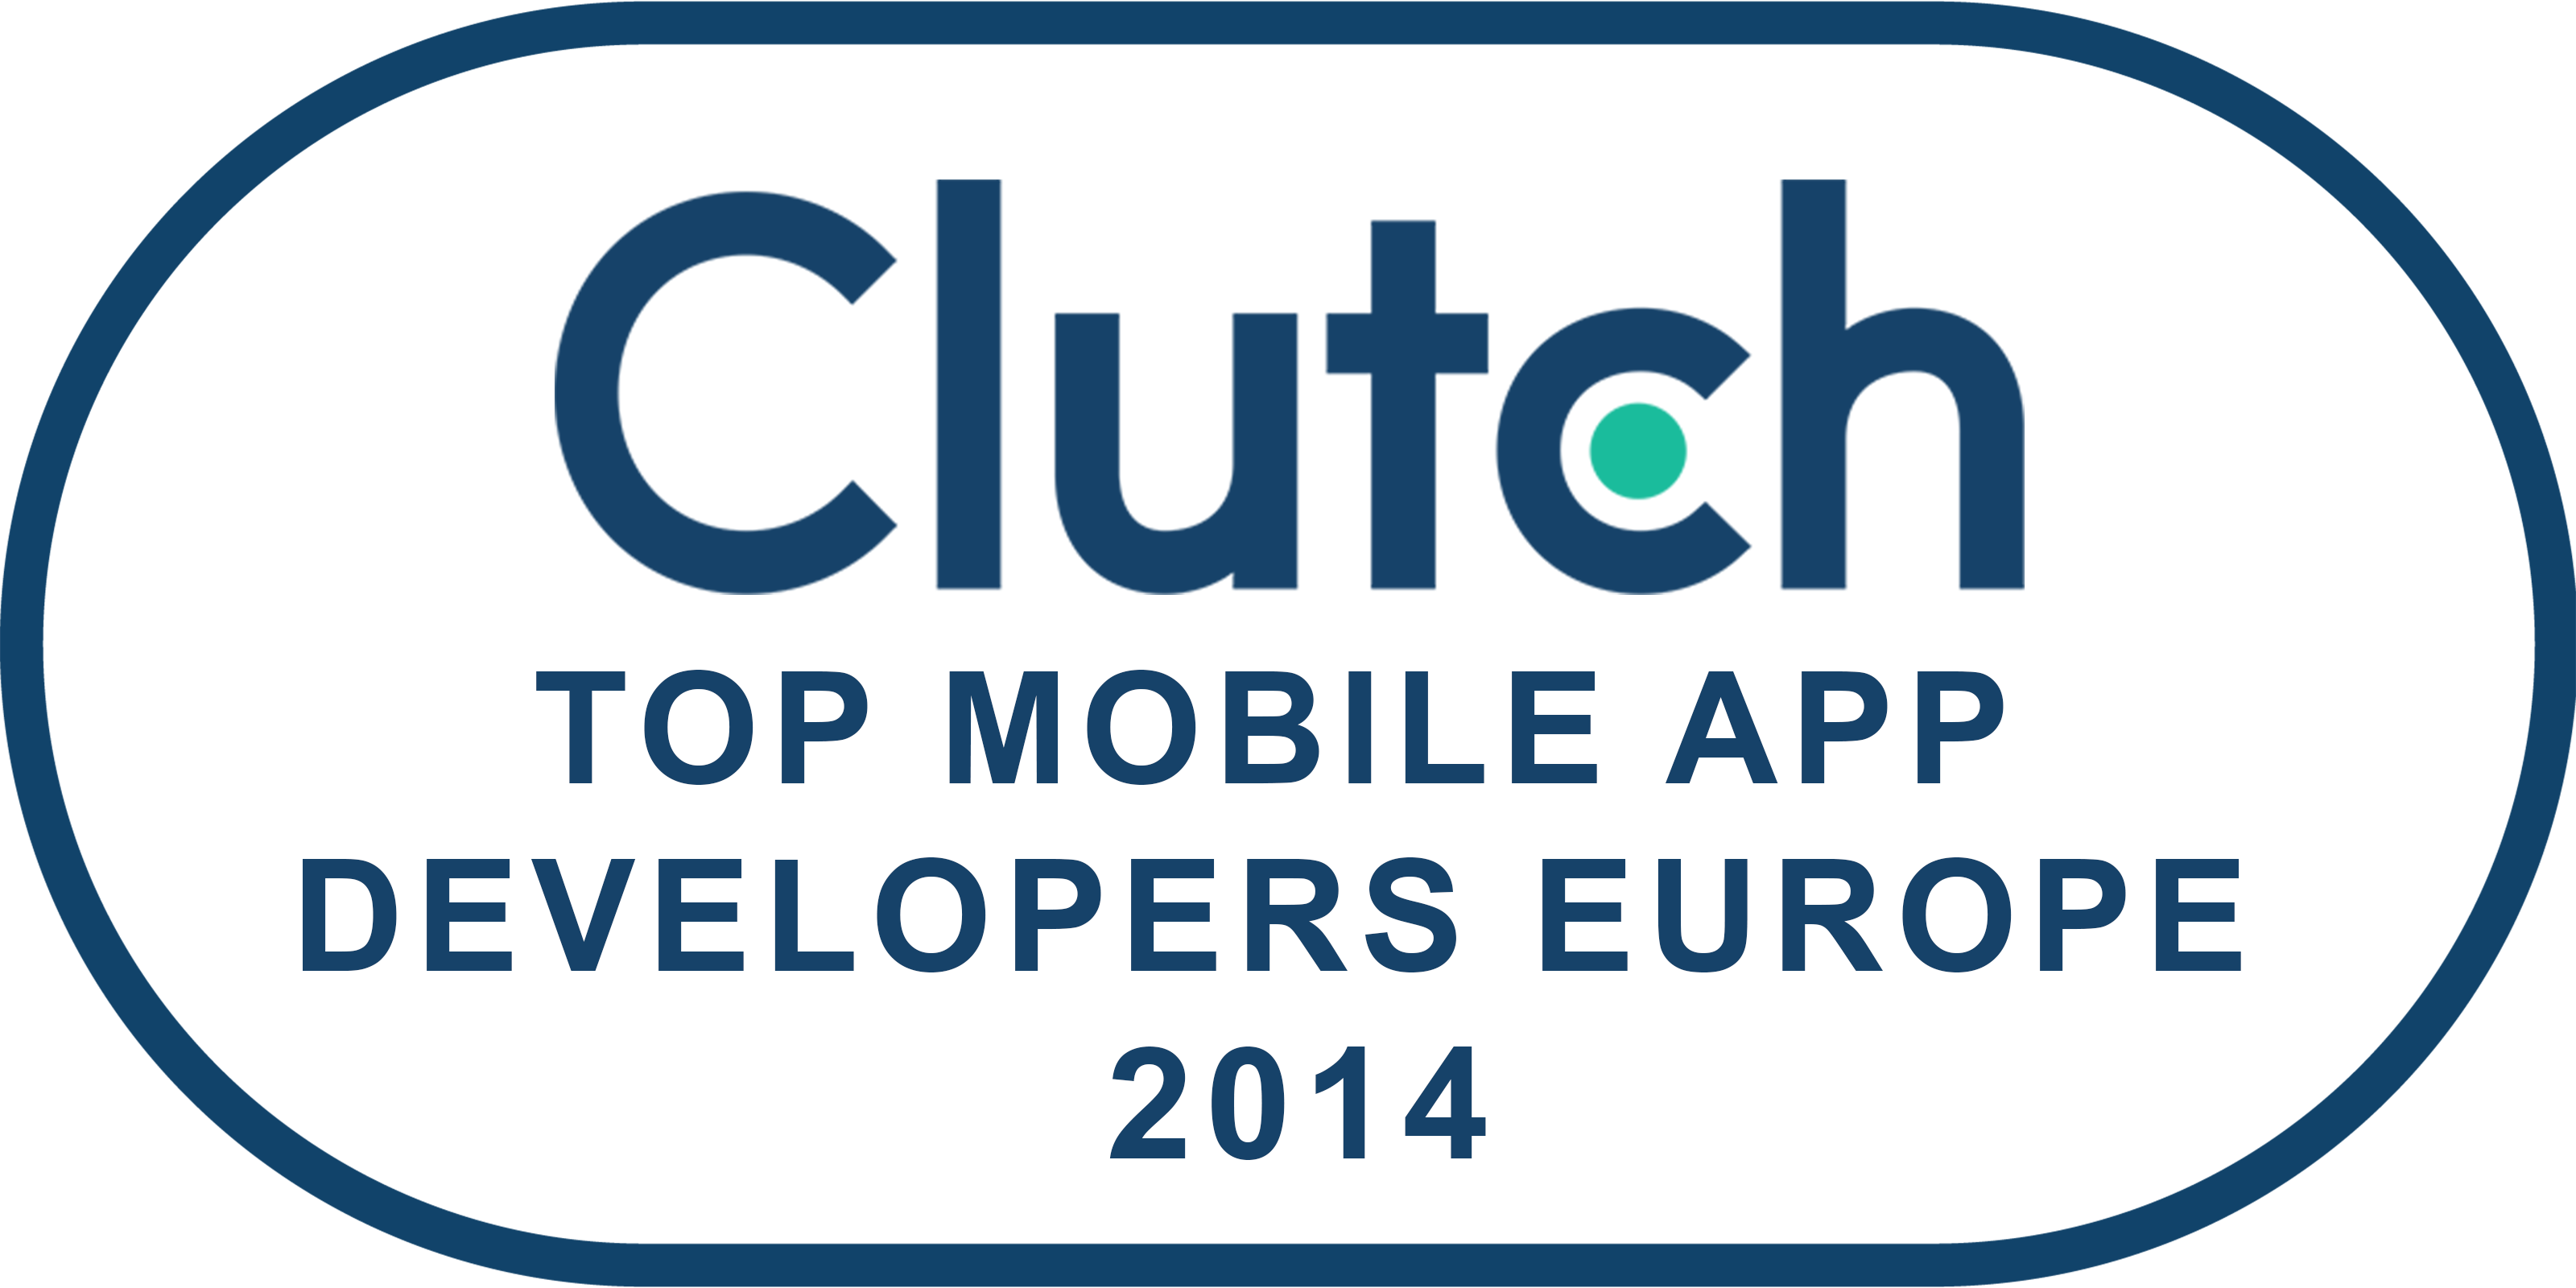 mobile_app_developers_europe_2014_large